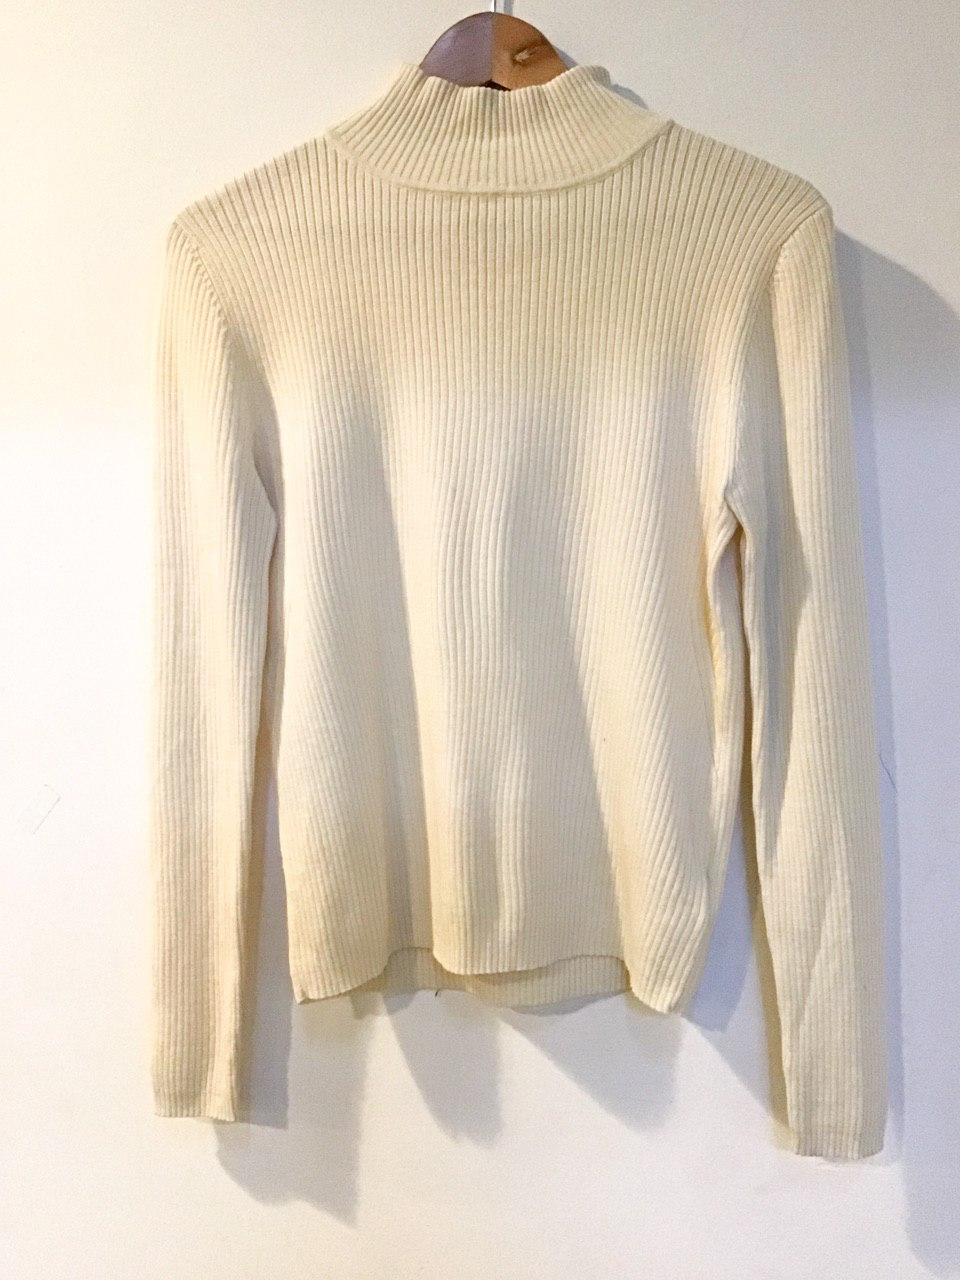 BJ1529 GIVORS EXCELLENCE KNITWEAR